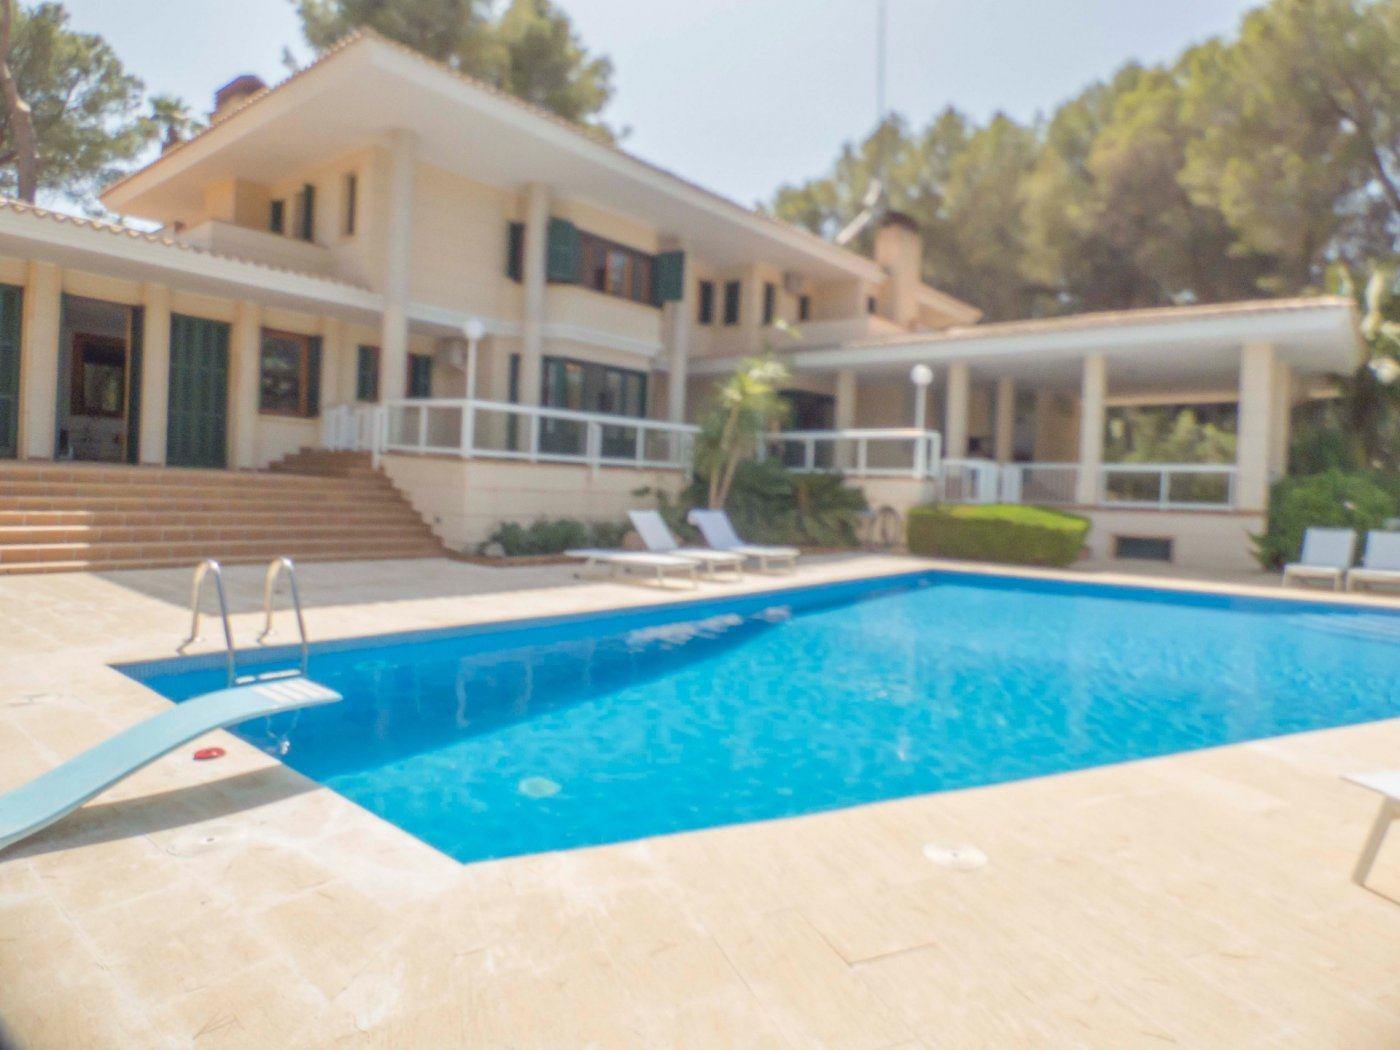 Villa for sale in Son Vida, Palma de Mallorca